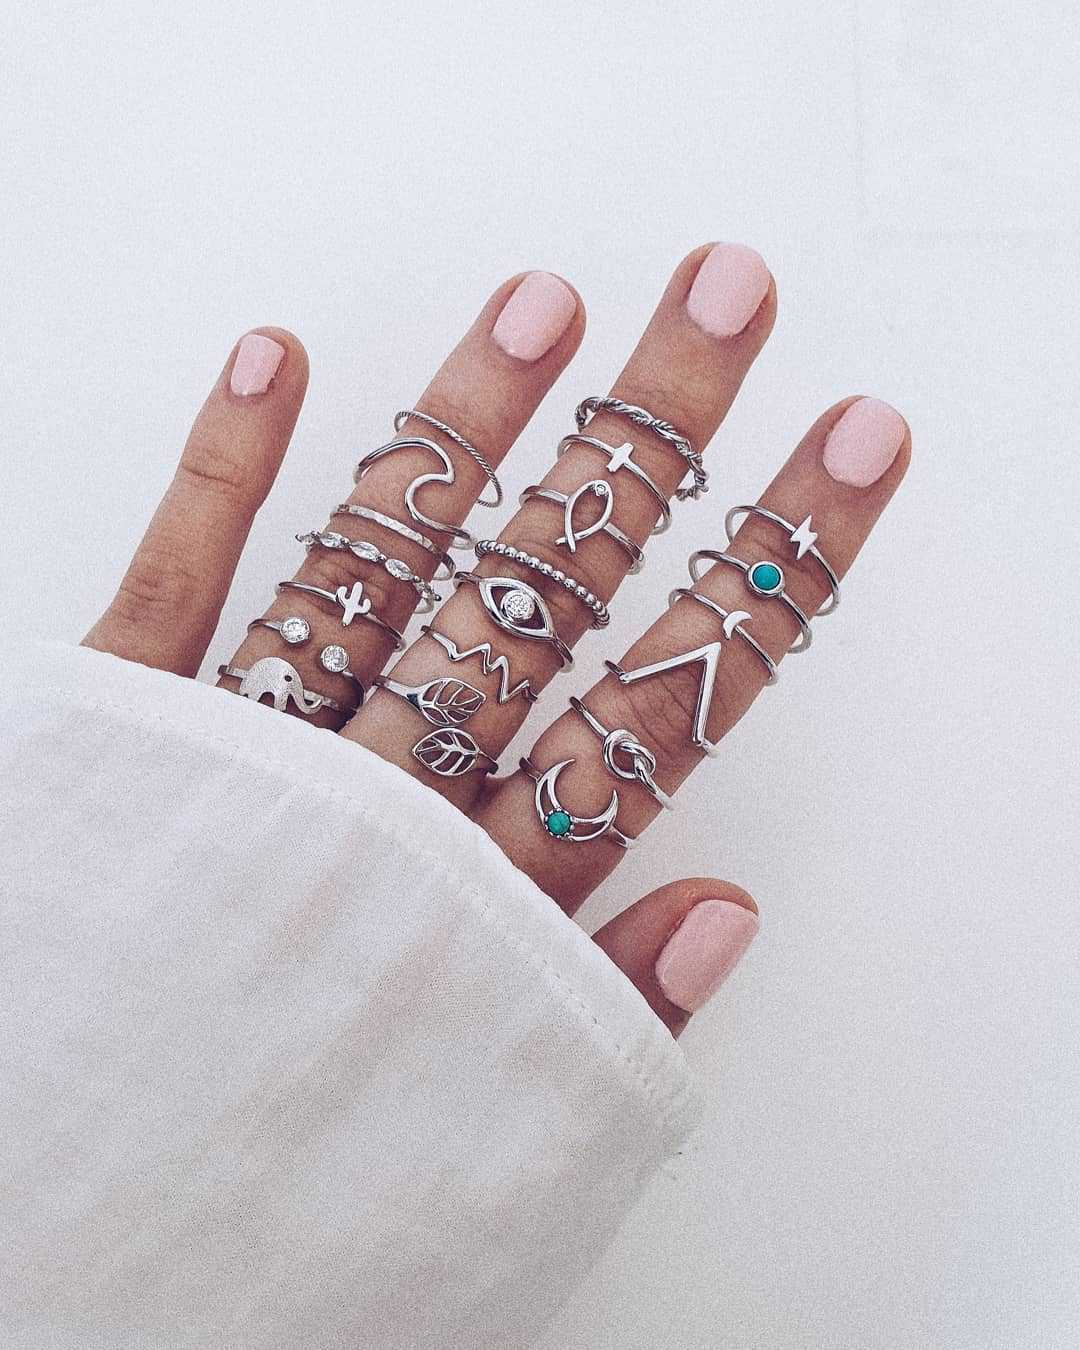 20pcs / lot Mixed Elephant Leaves Wave Moon Crystal Geometric Silver Joint Ring Set Women Wedding Party Jewelry Accessories